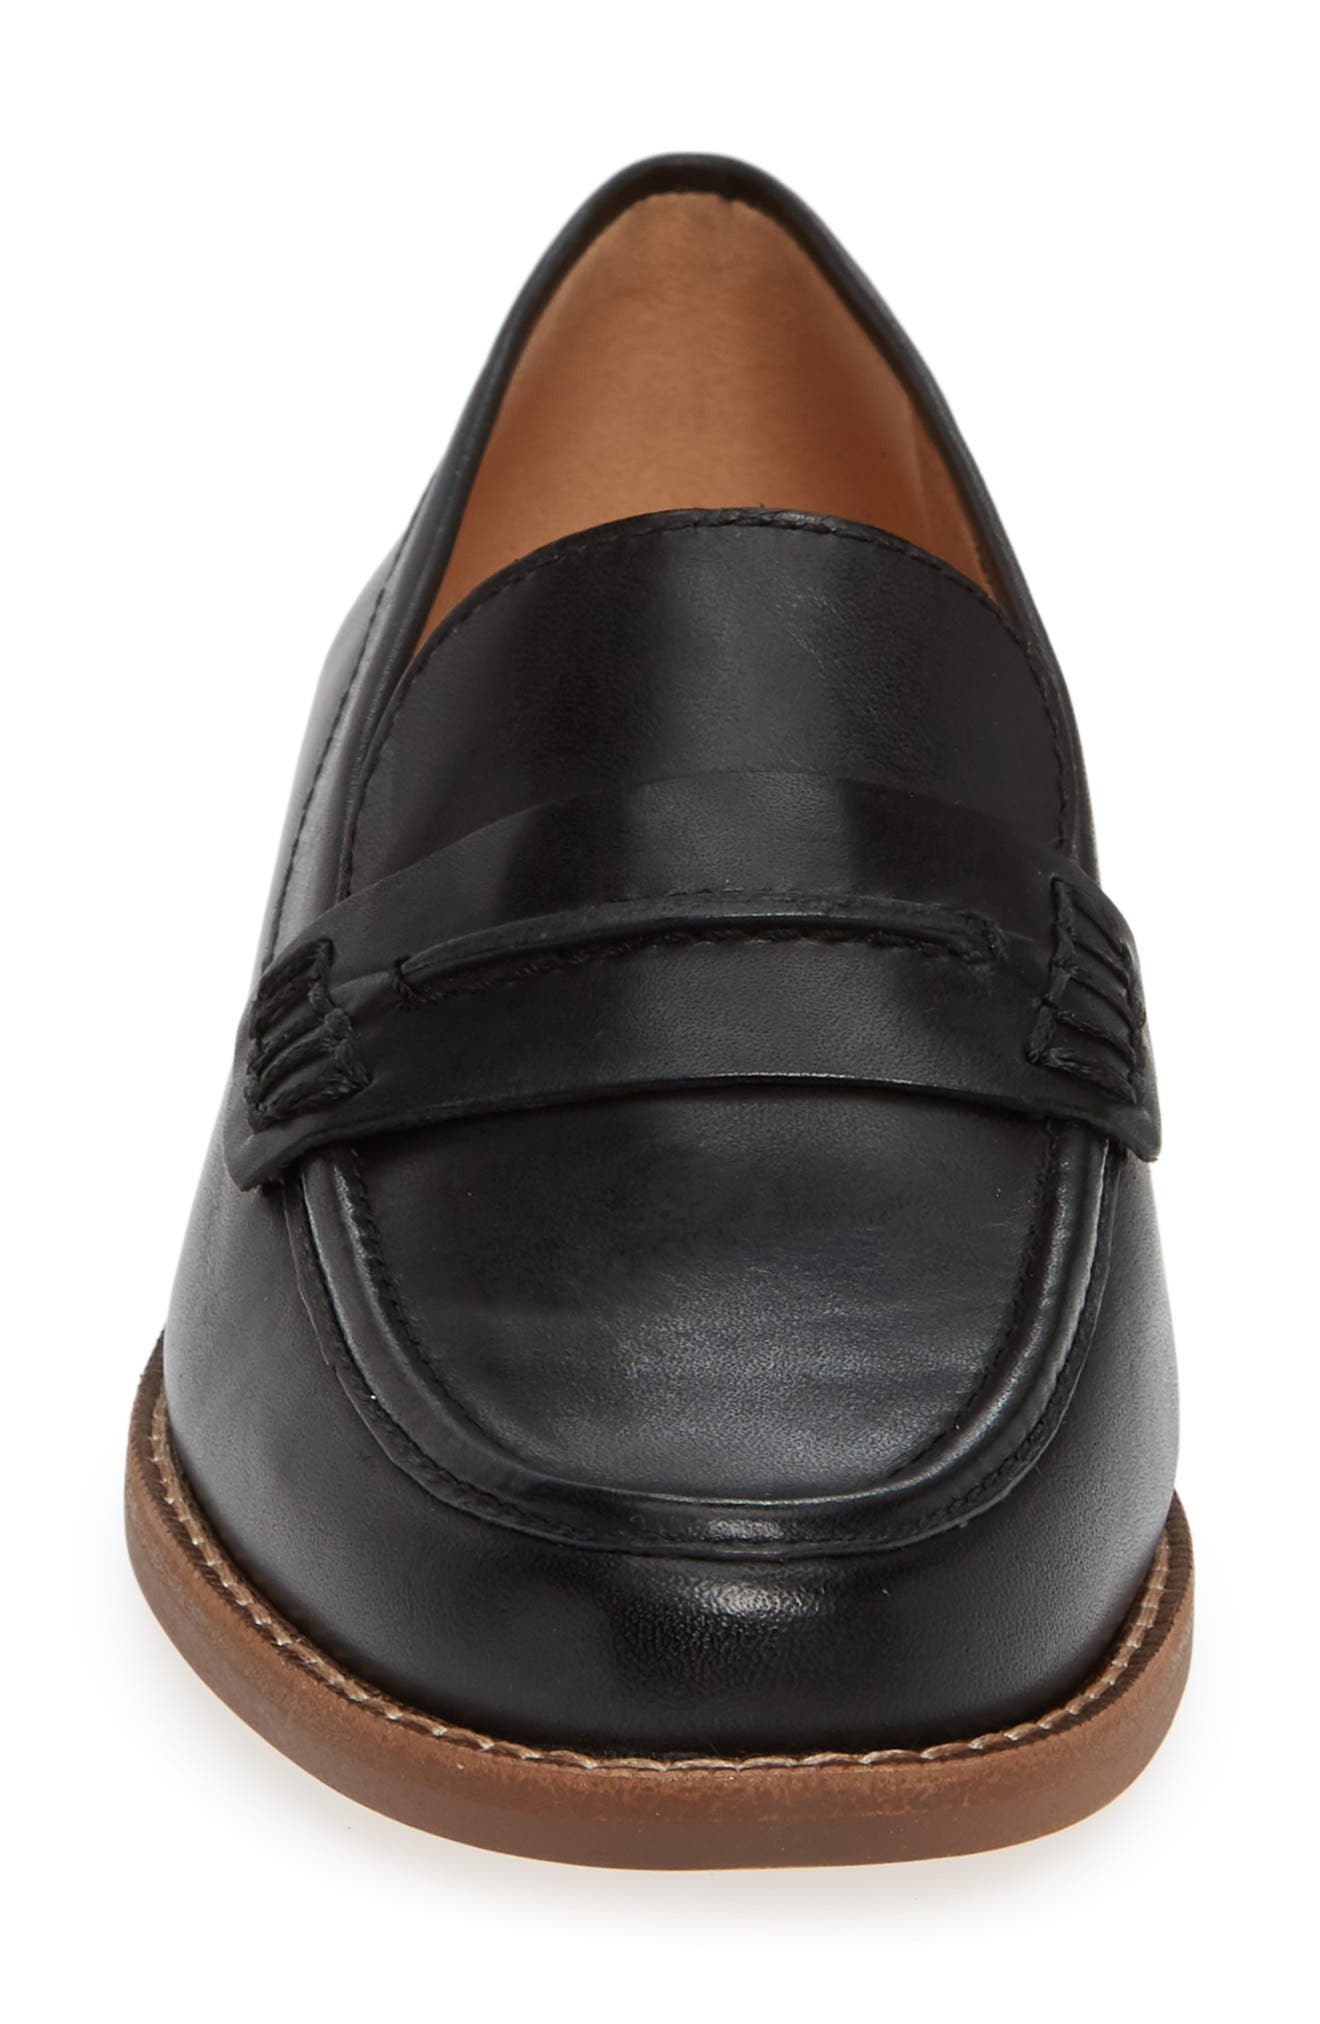 MADEWELL, The Elinor Loafer, Alternate thumbnail 4, color, BLACK LEATHER